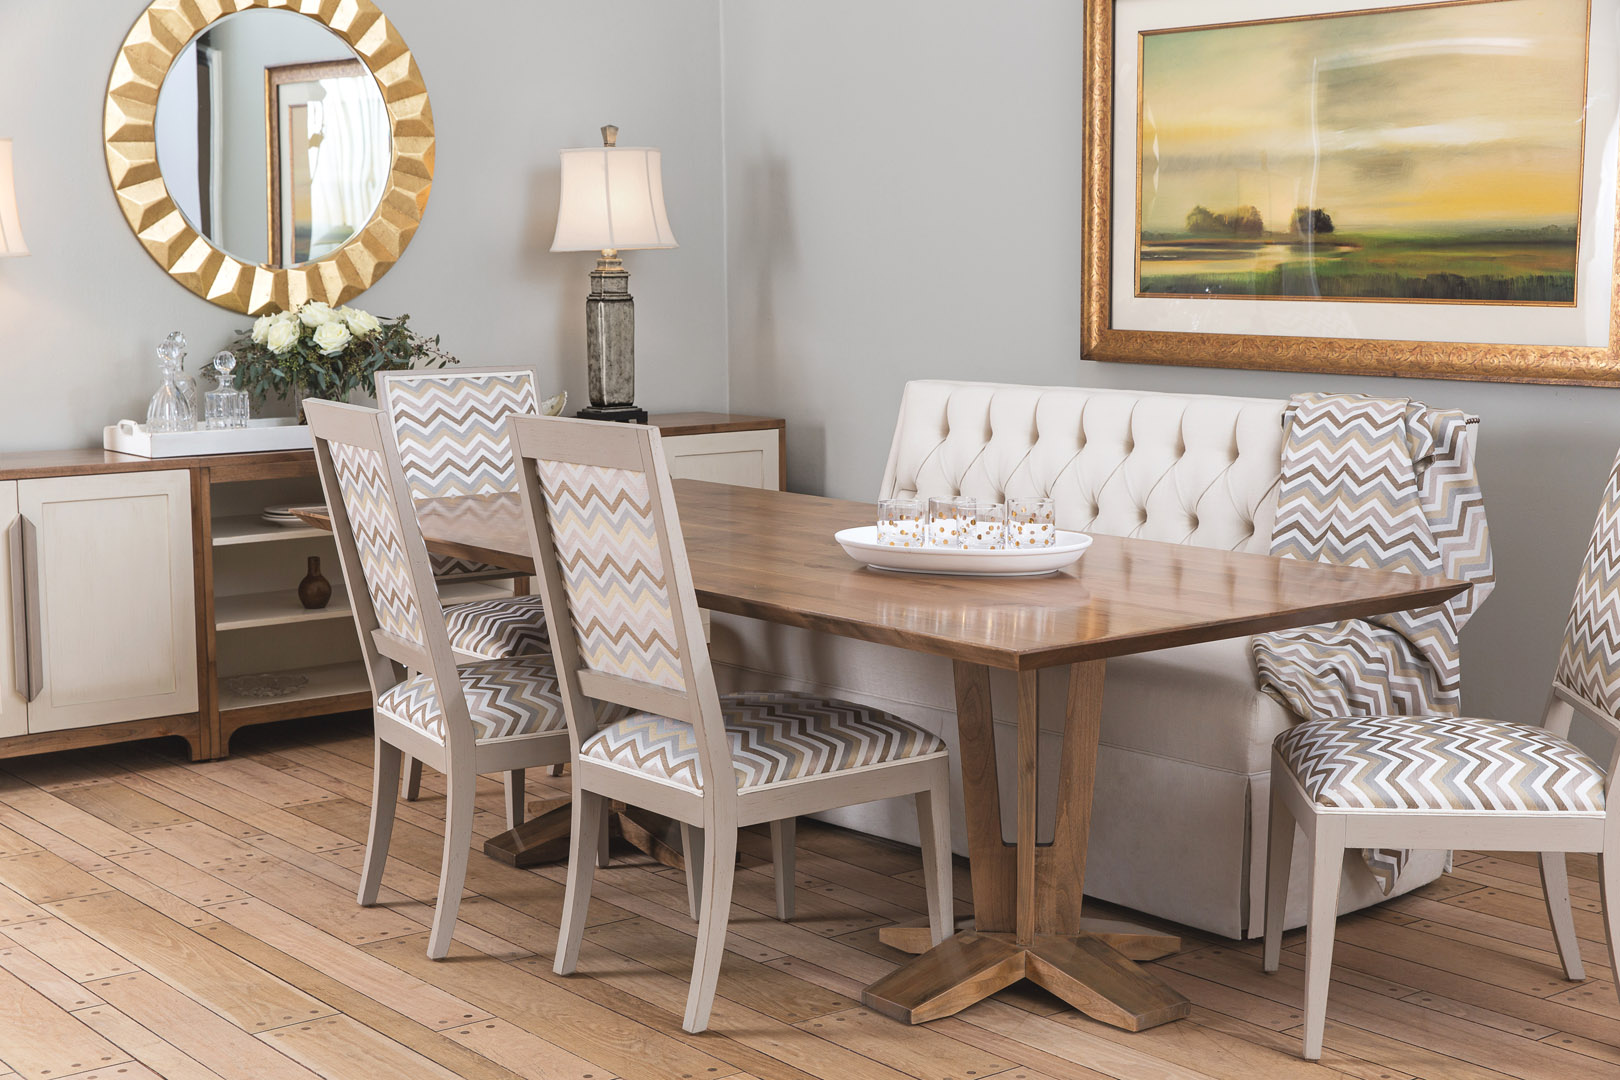 Dining charlton furniture lorts dine lorts dining room lorts dining table workwithnaturefo